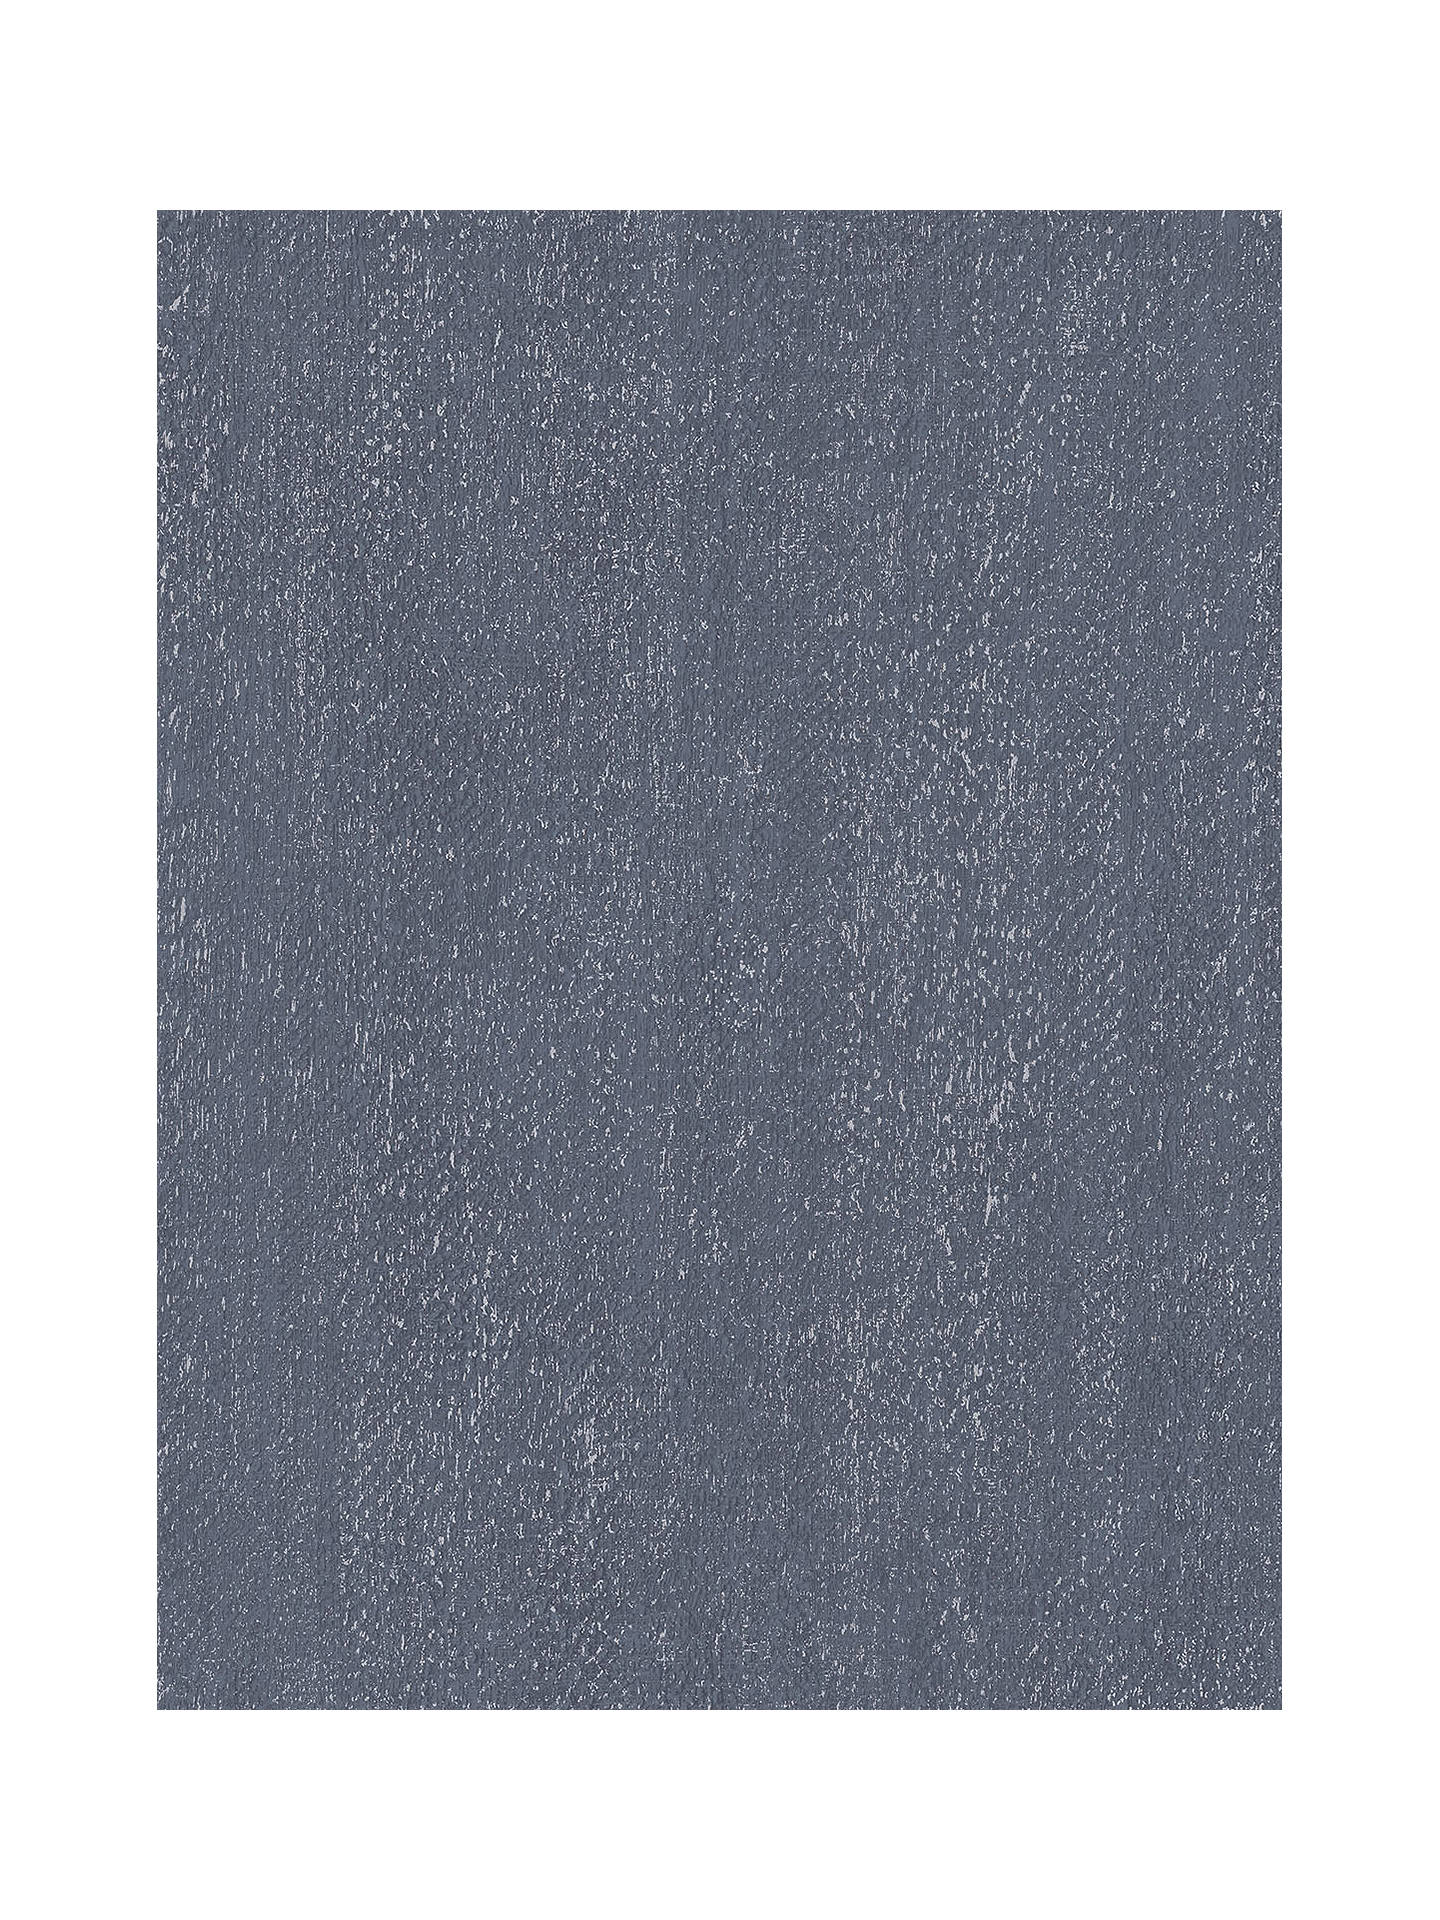 Buy Galerie Tip Texture Wallpaper, G67820 Online at johnlewis.com